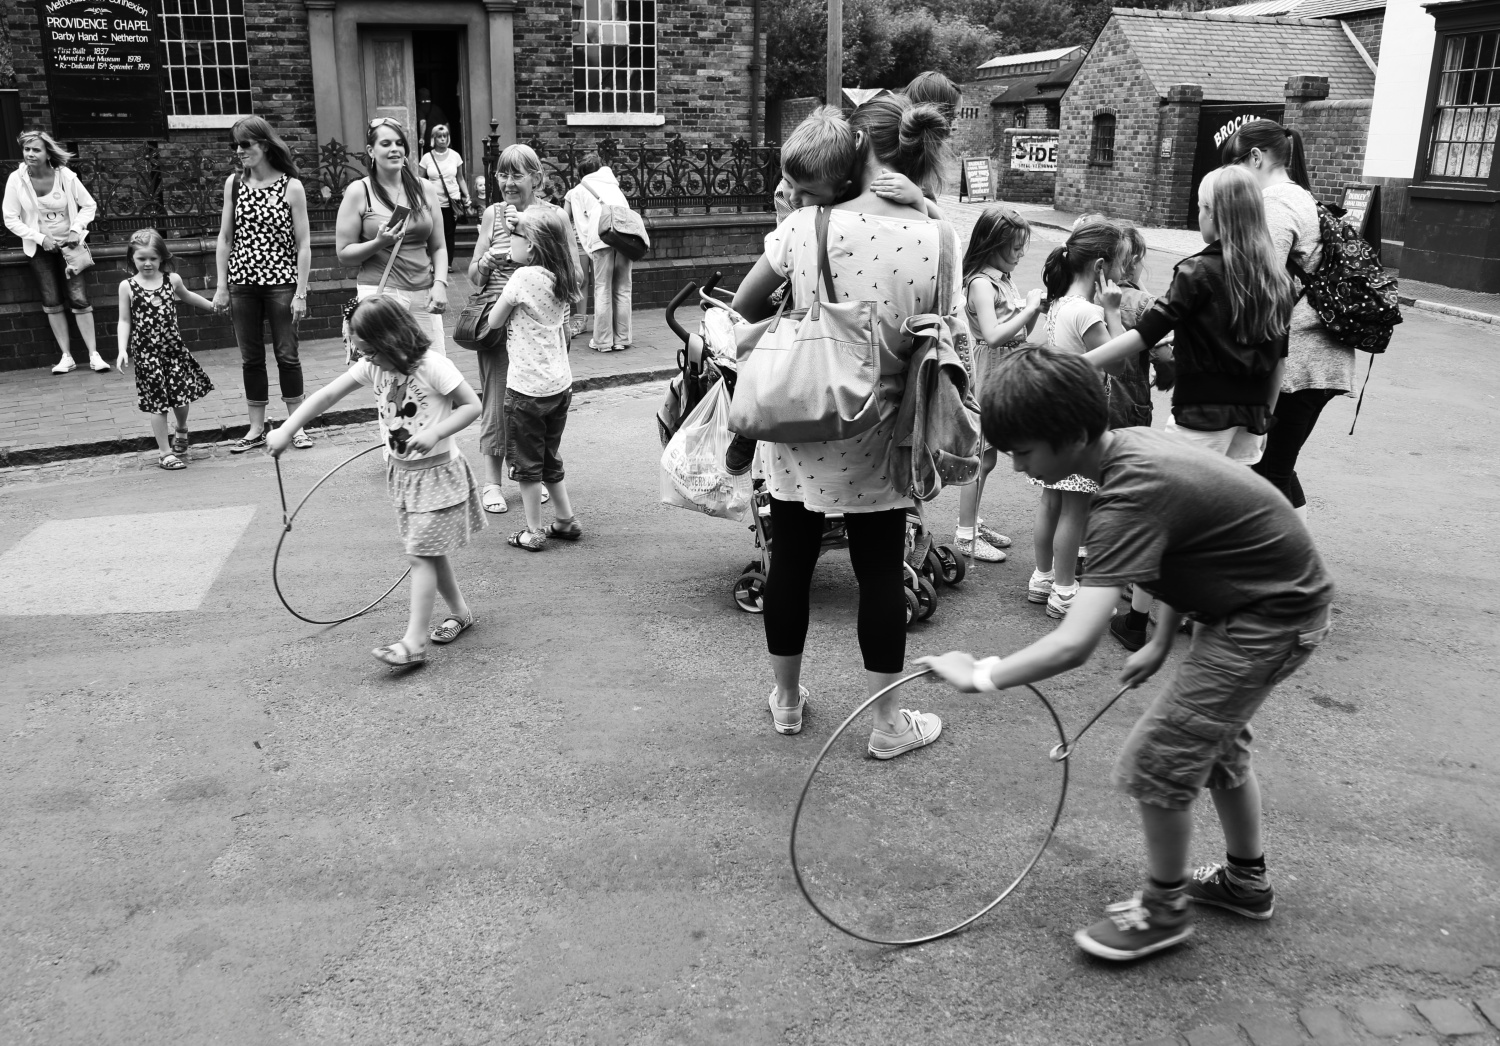 Children playing with metal hoop toys 1900s